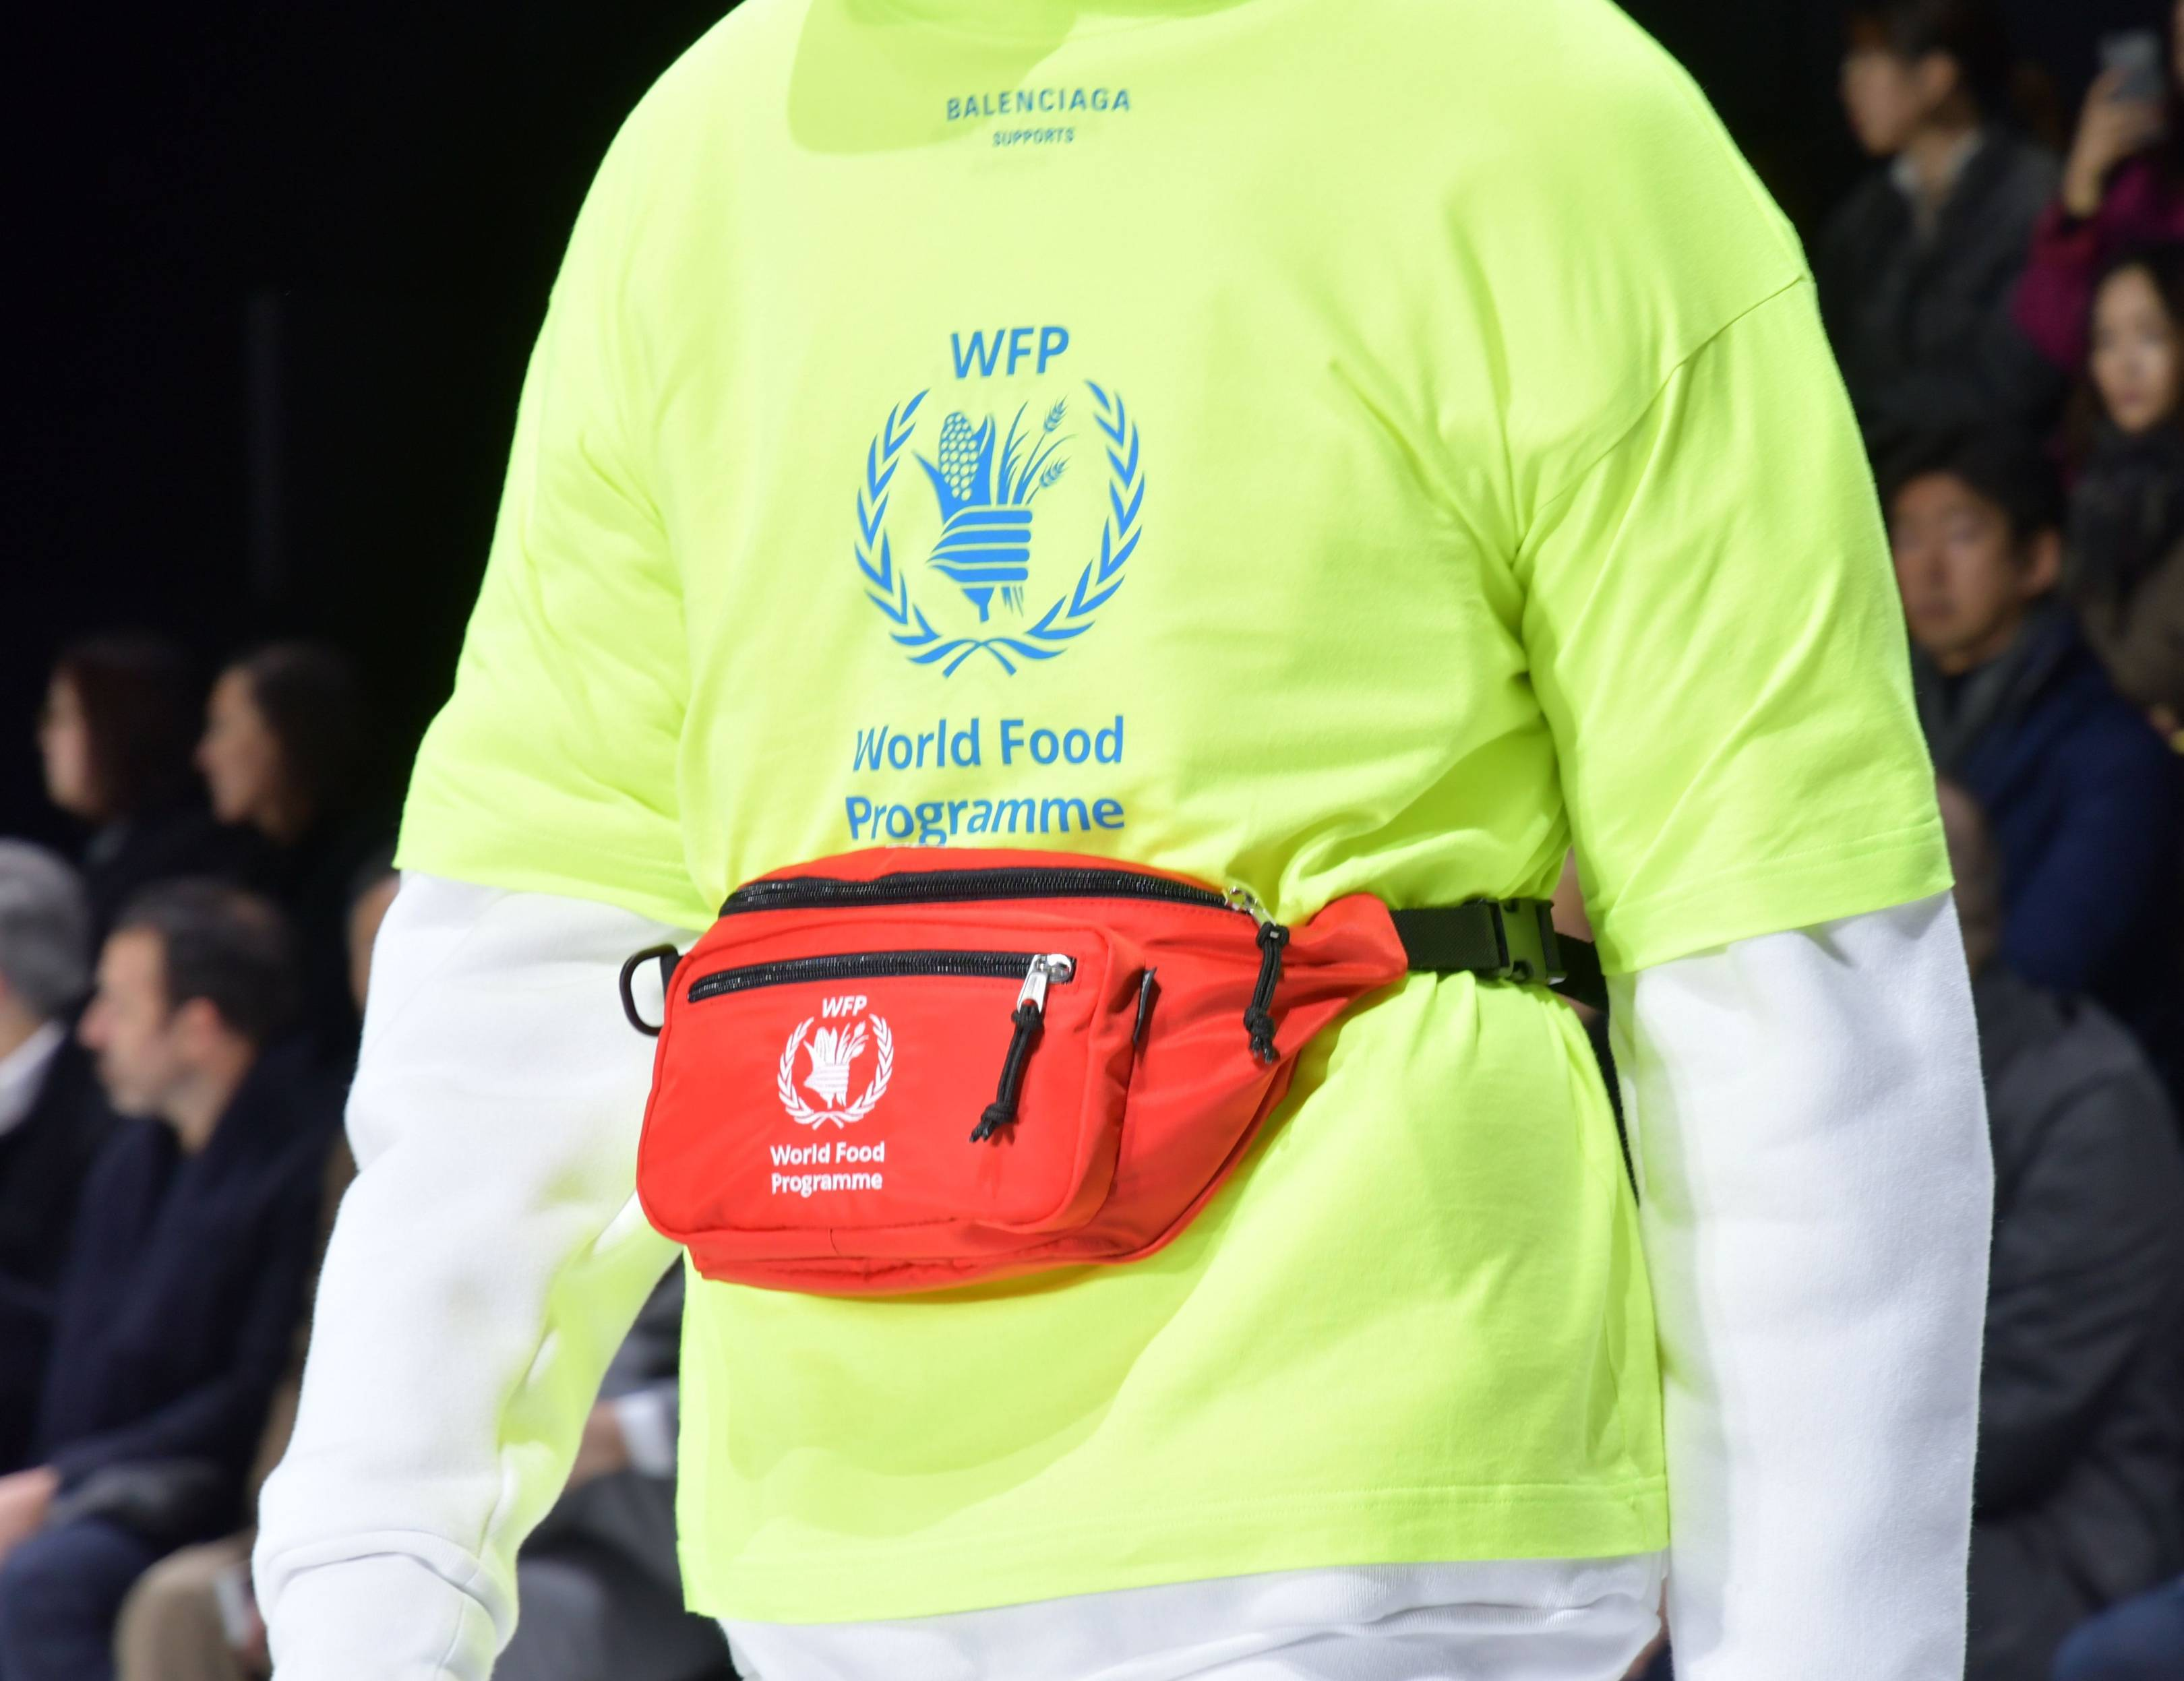 07a330ab2b95 Balenciaga Unveils Merchandise Supporting The WFP At PFW Show ...